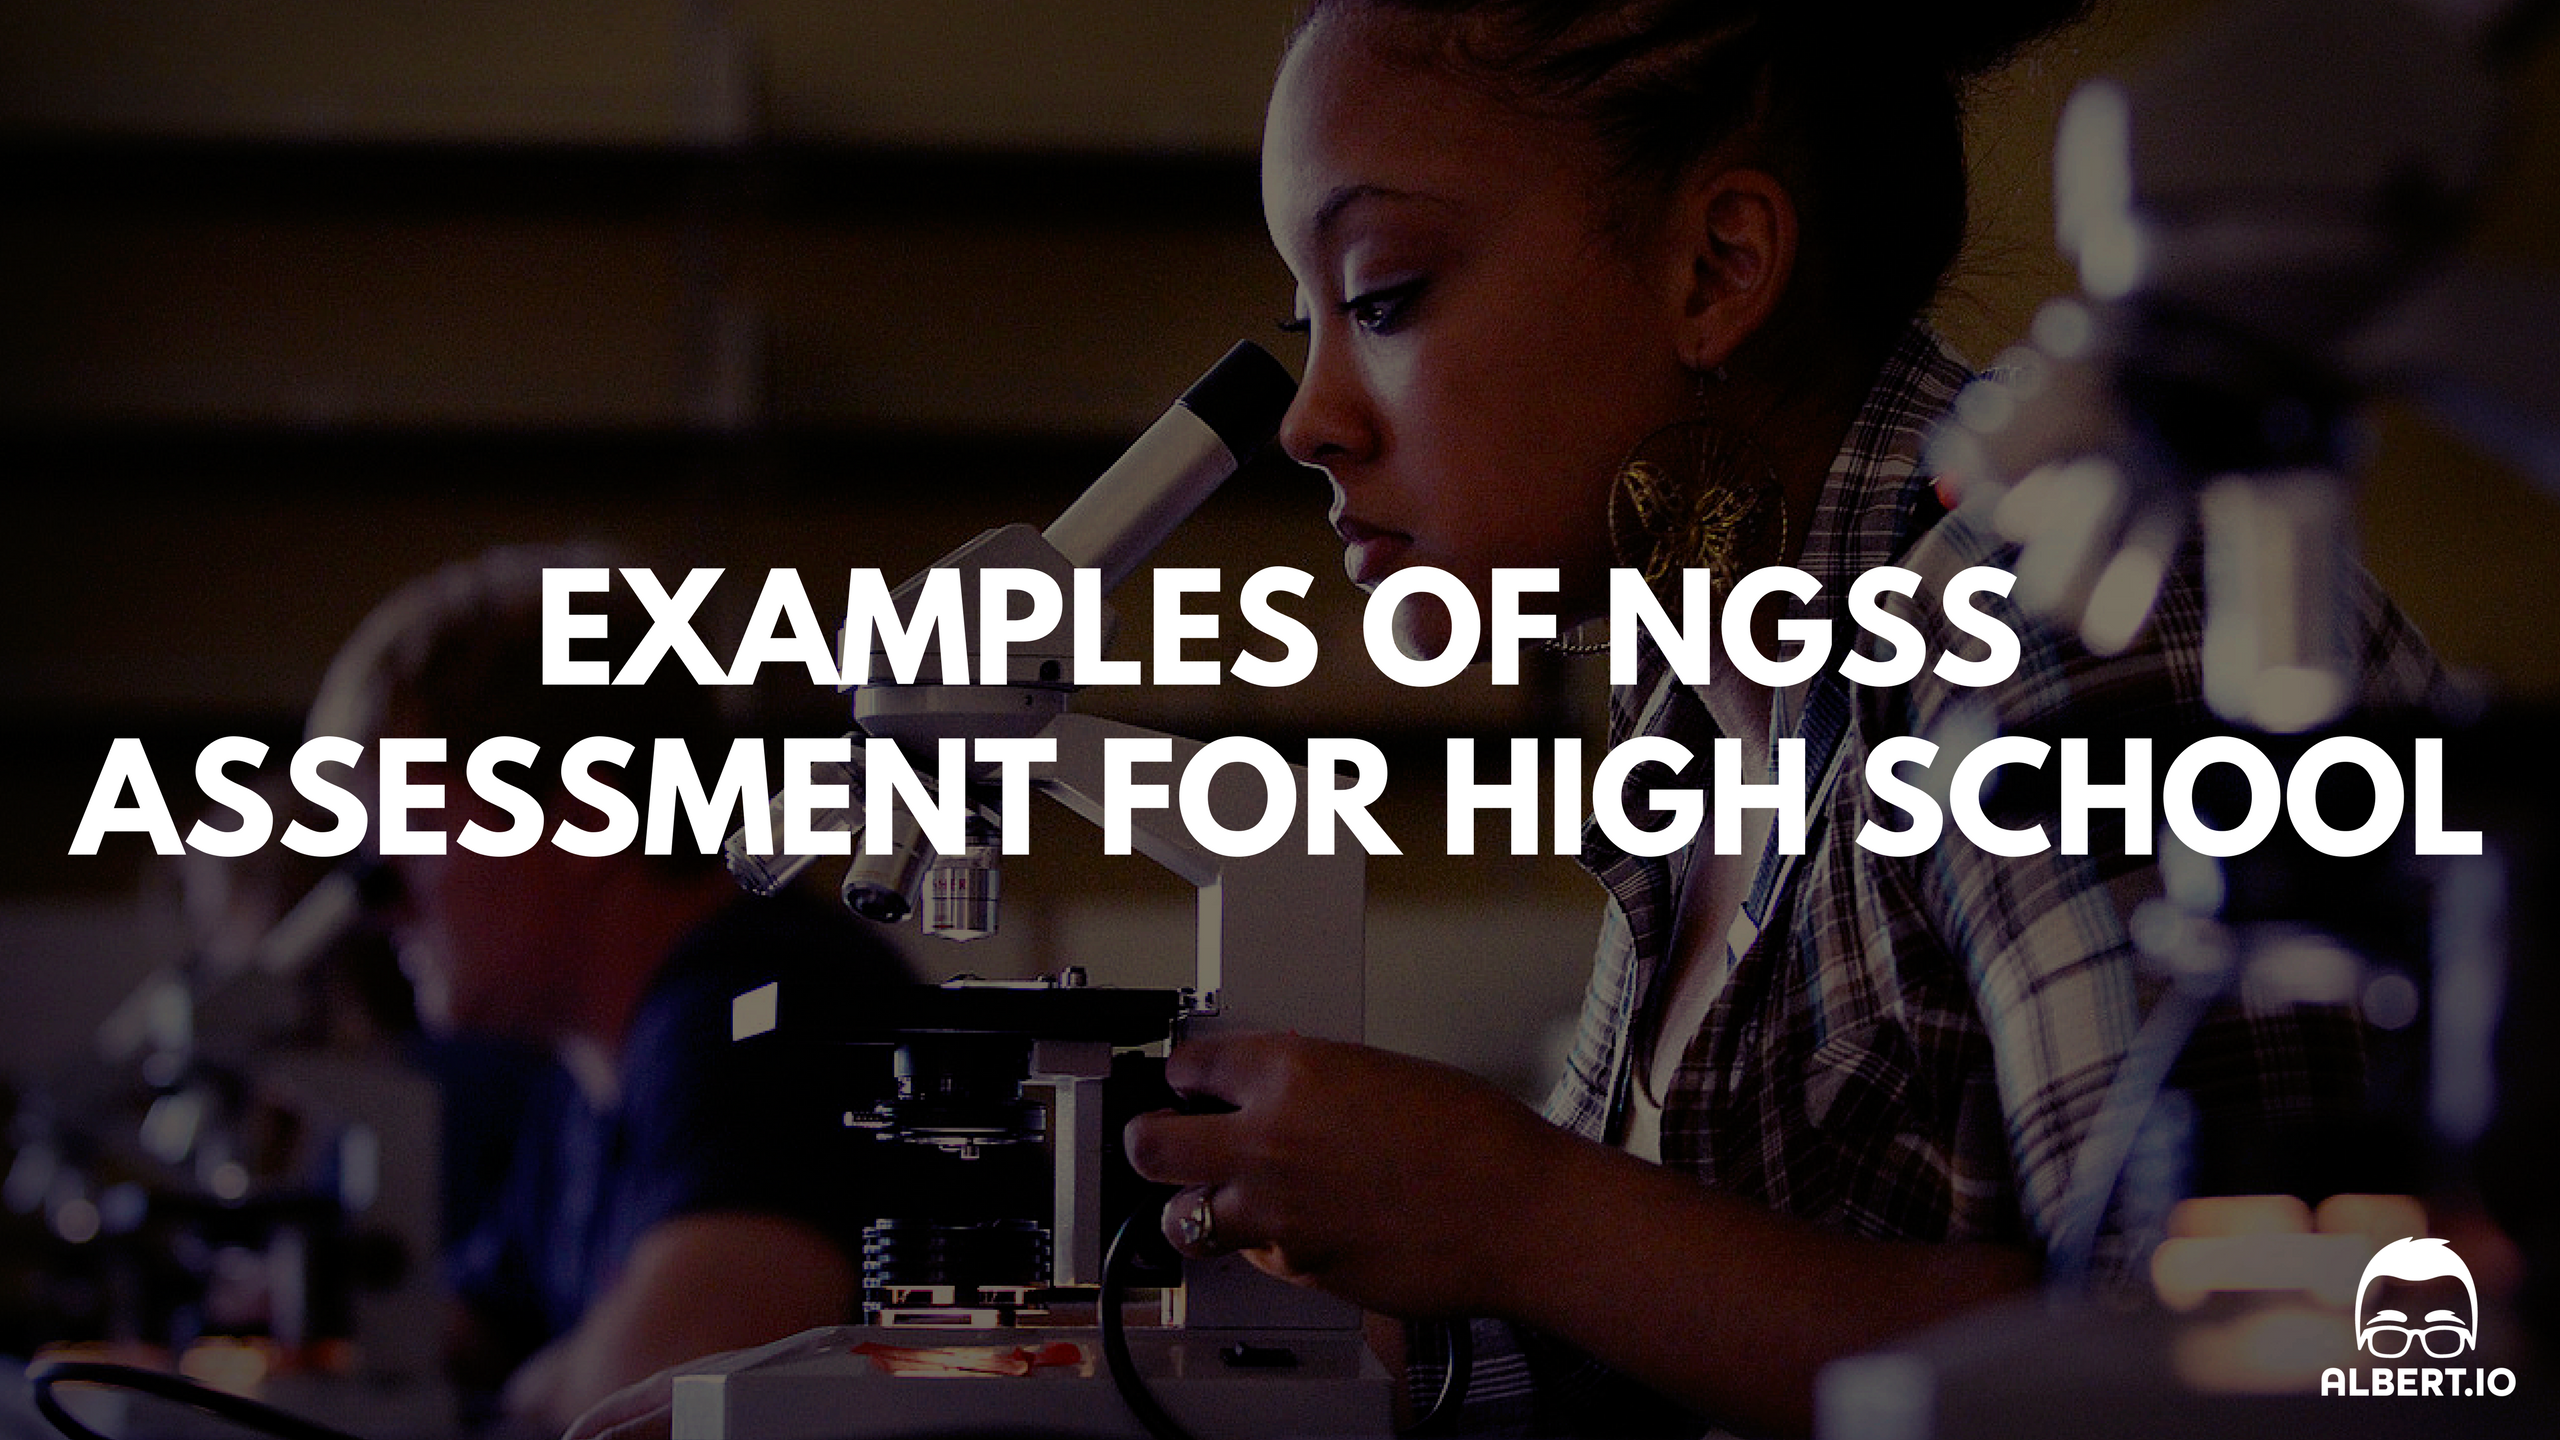 NGSS Assessment for High School